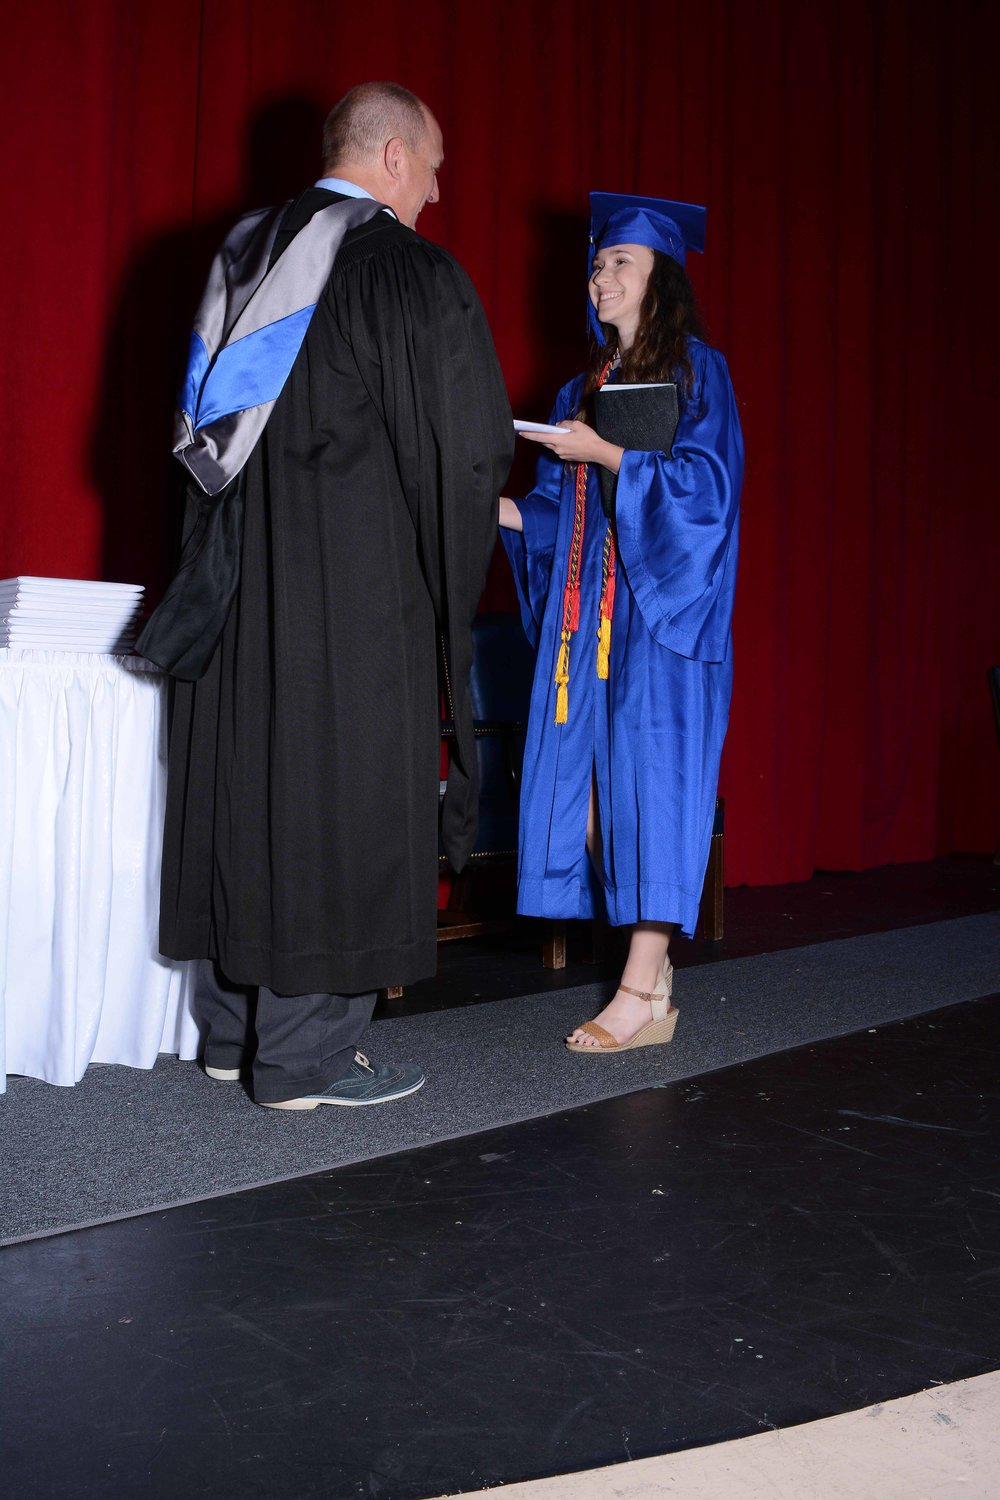 May14 Commencement95.jpg